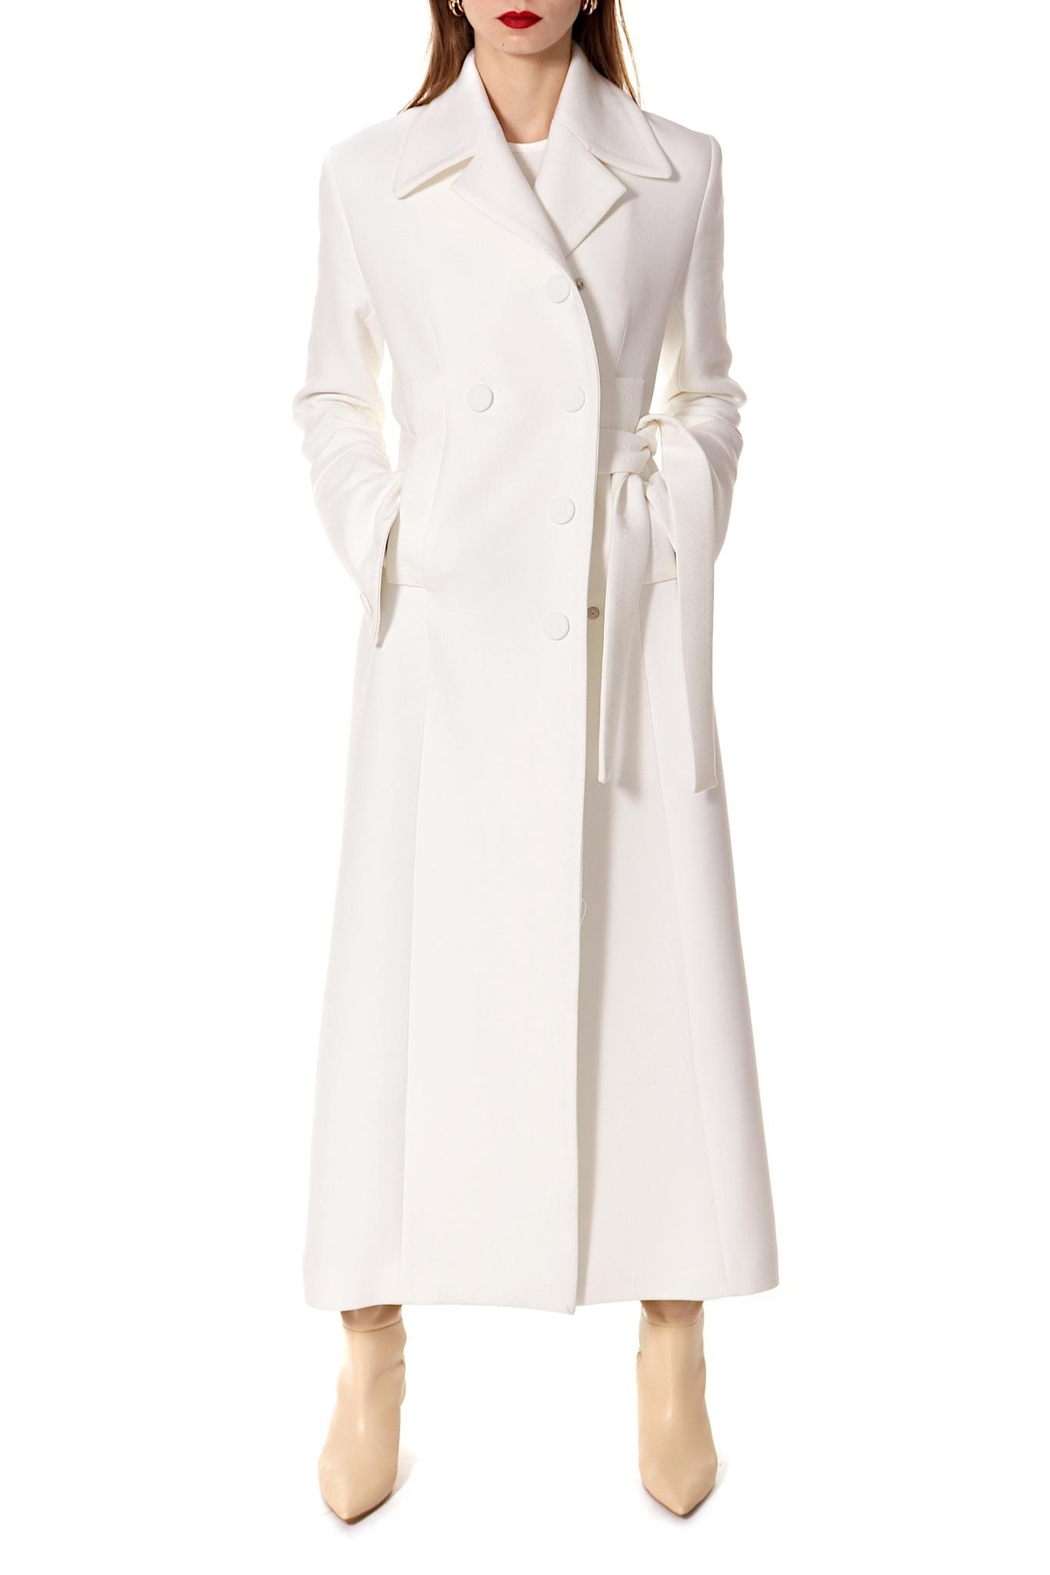 AGGI Coat Tilda Off-White - Main Image